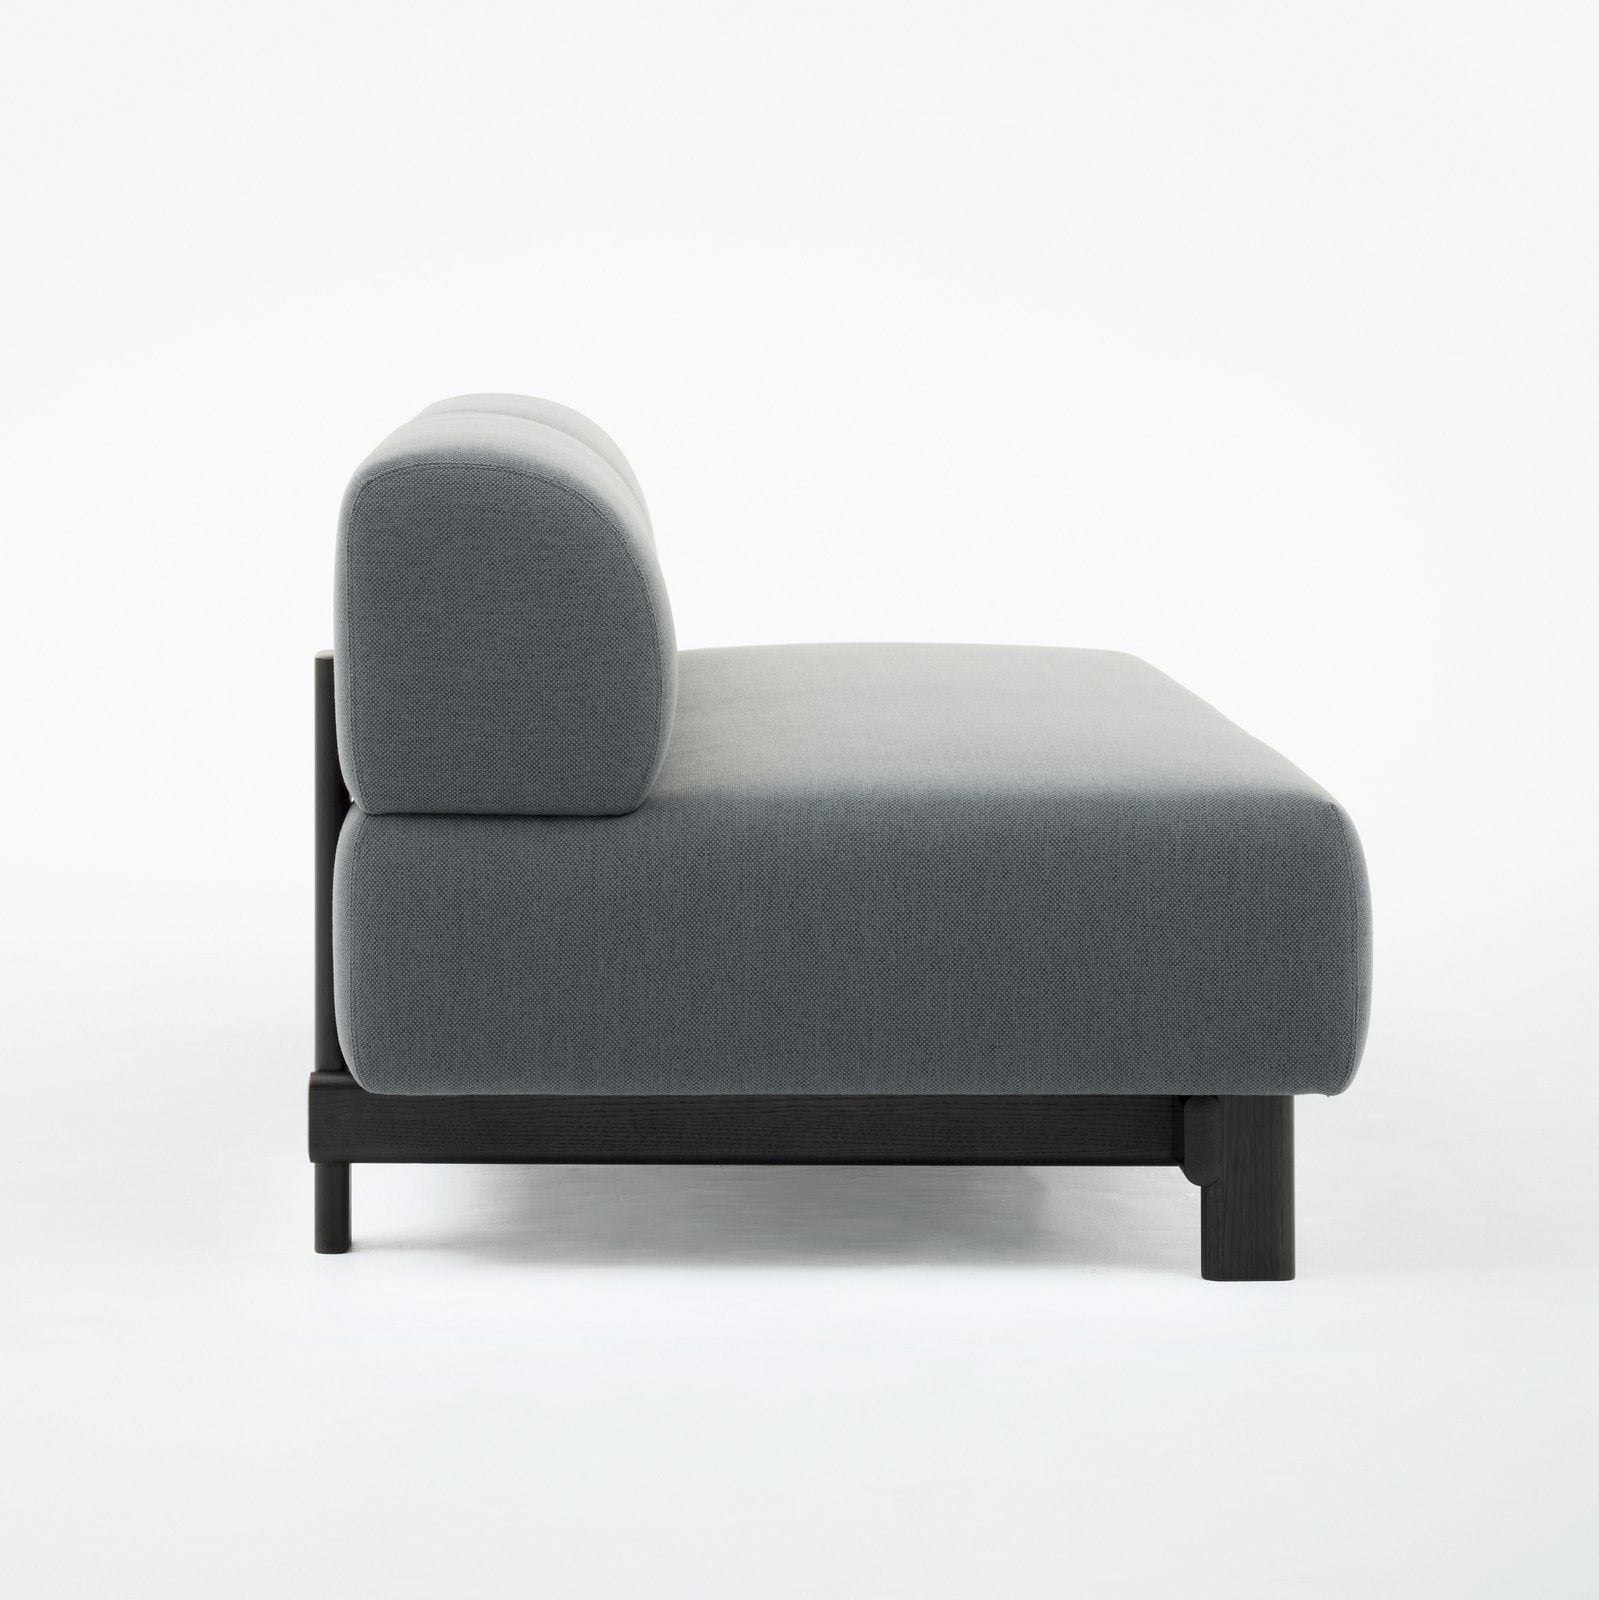 Karimoku New Standard - ELEPHANT SOFA THREE SEATER BENCH - Sofa